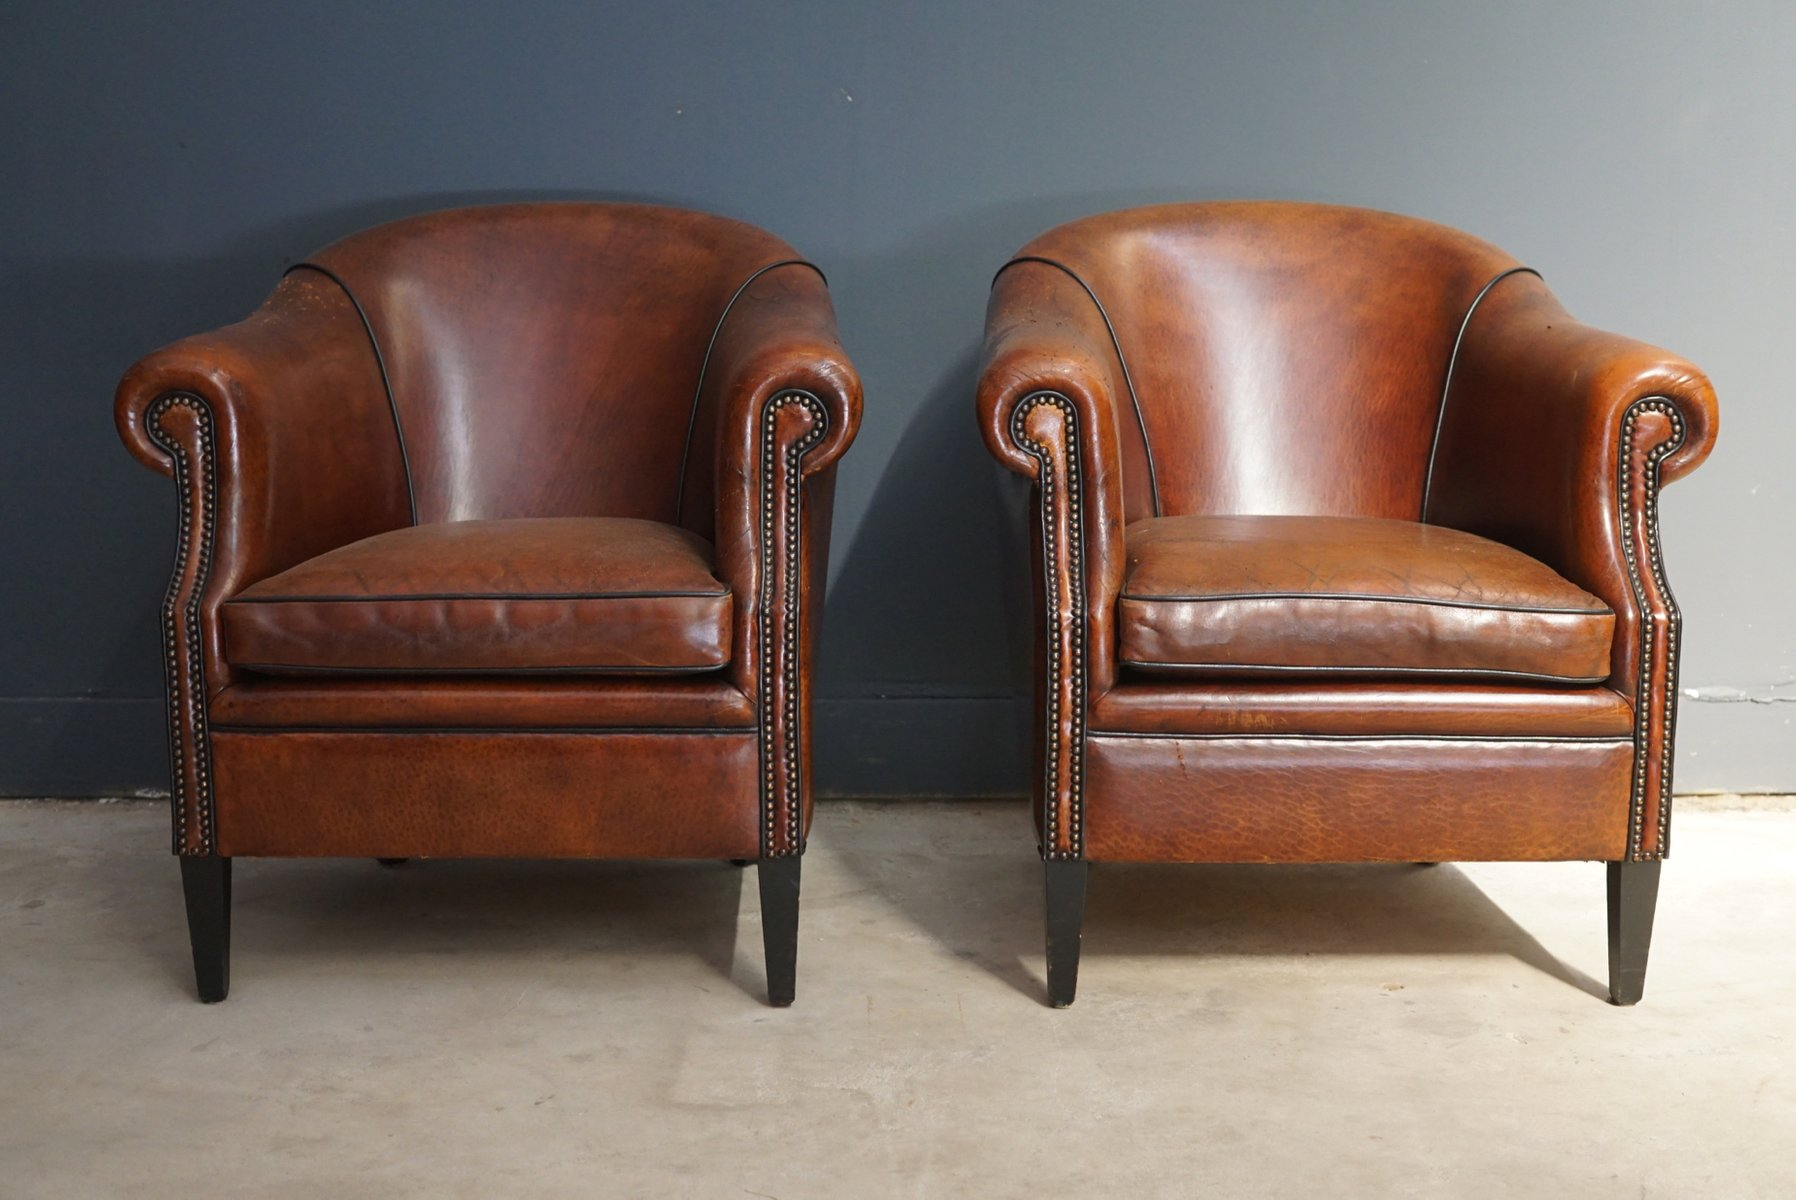 Leather Club Chair Vintage Cognac Leather Club Chairs Set Of 2 For Sale At